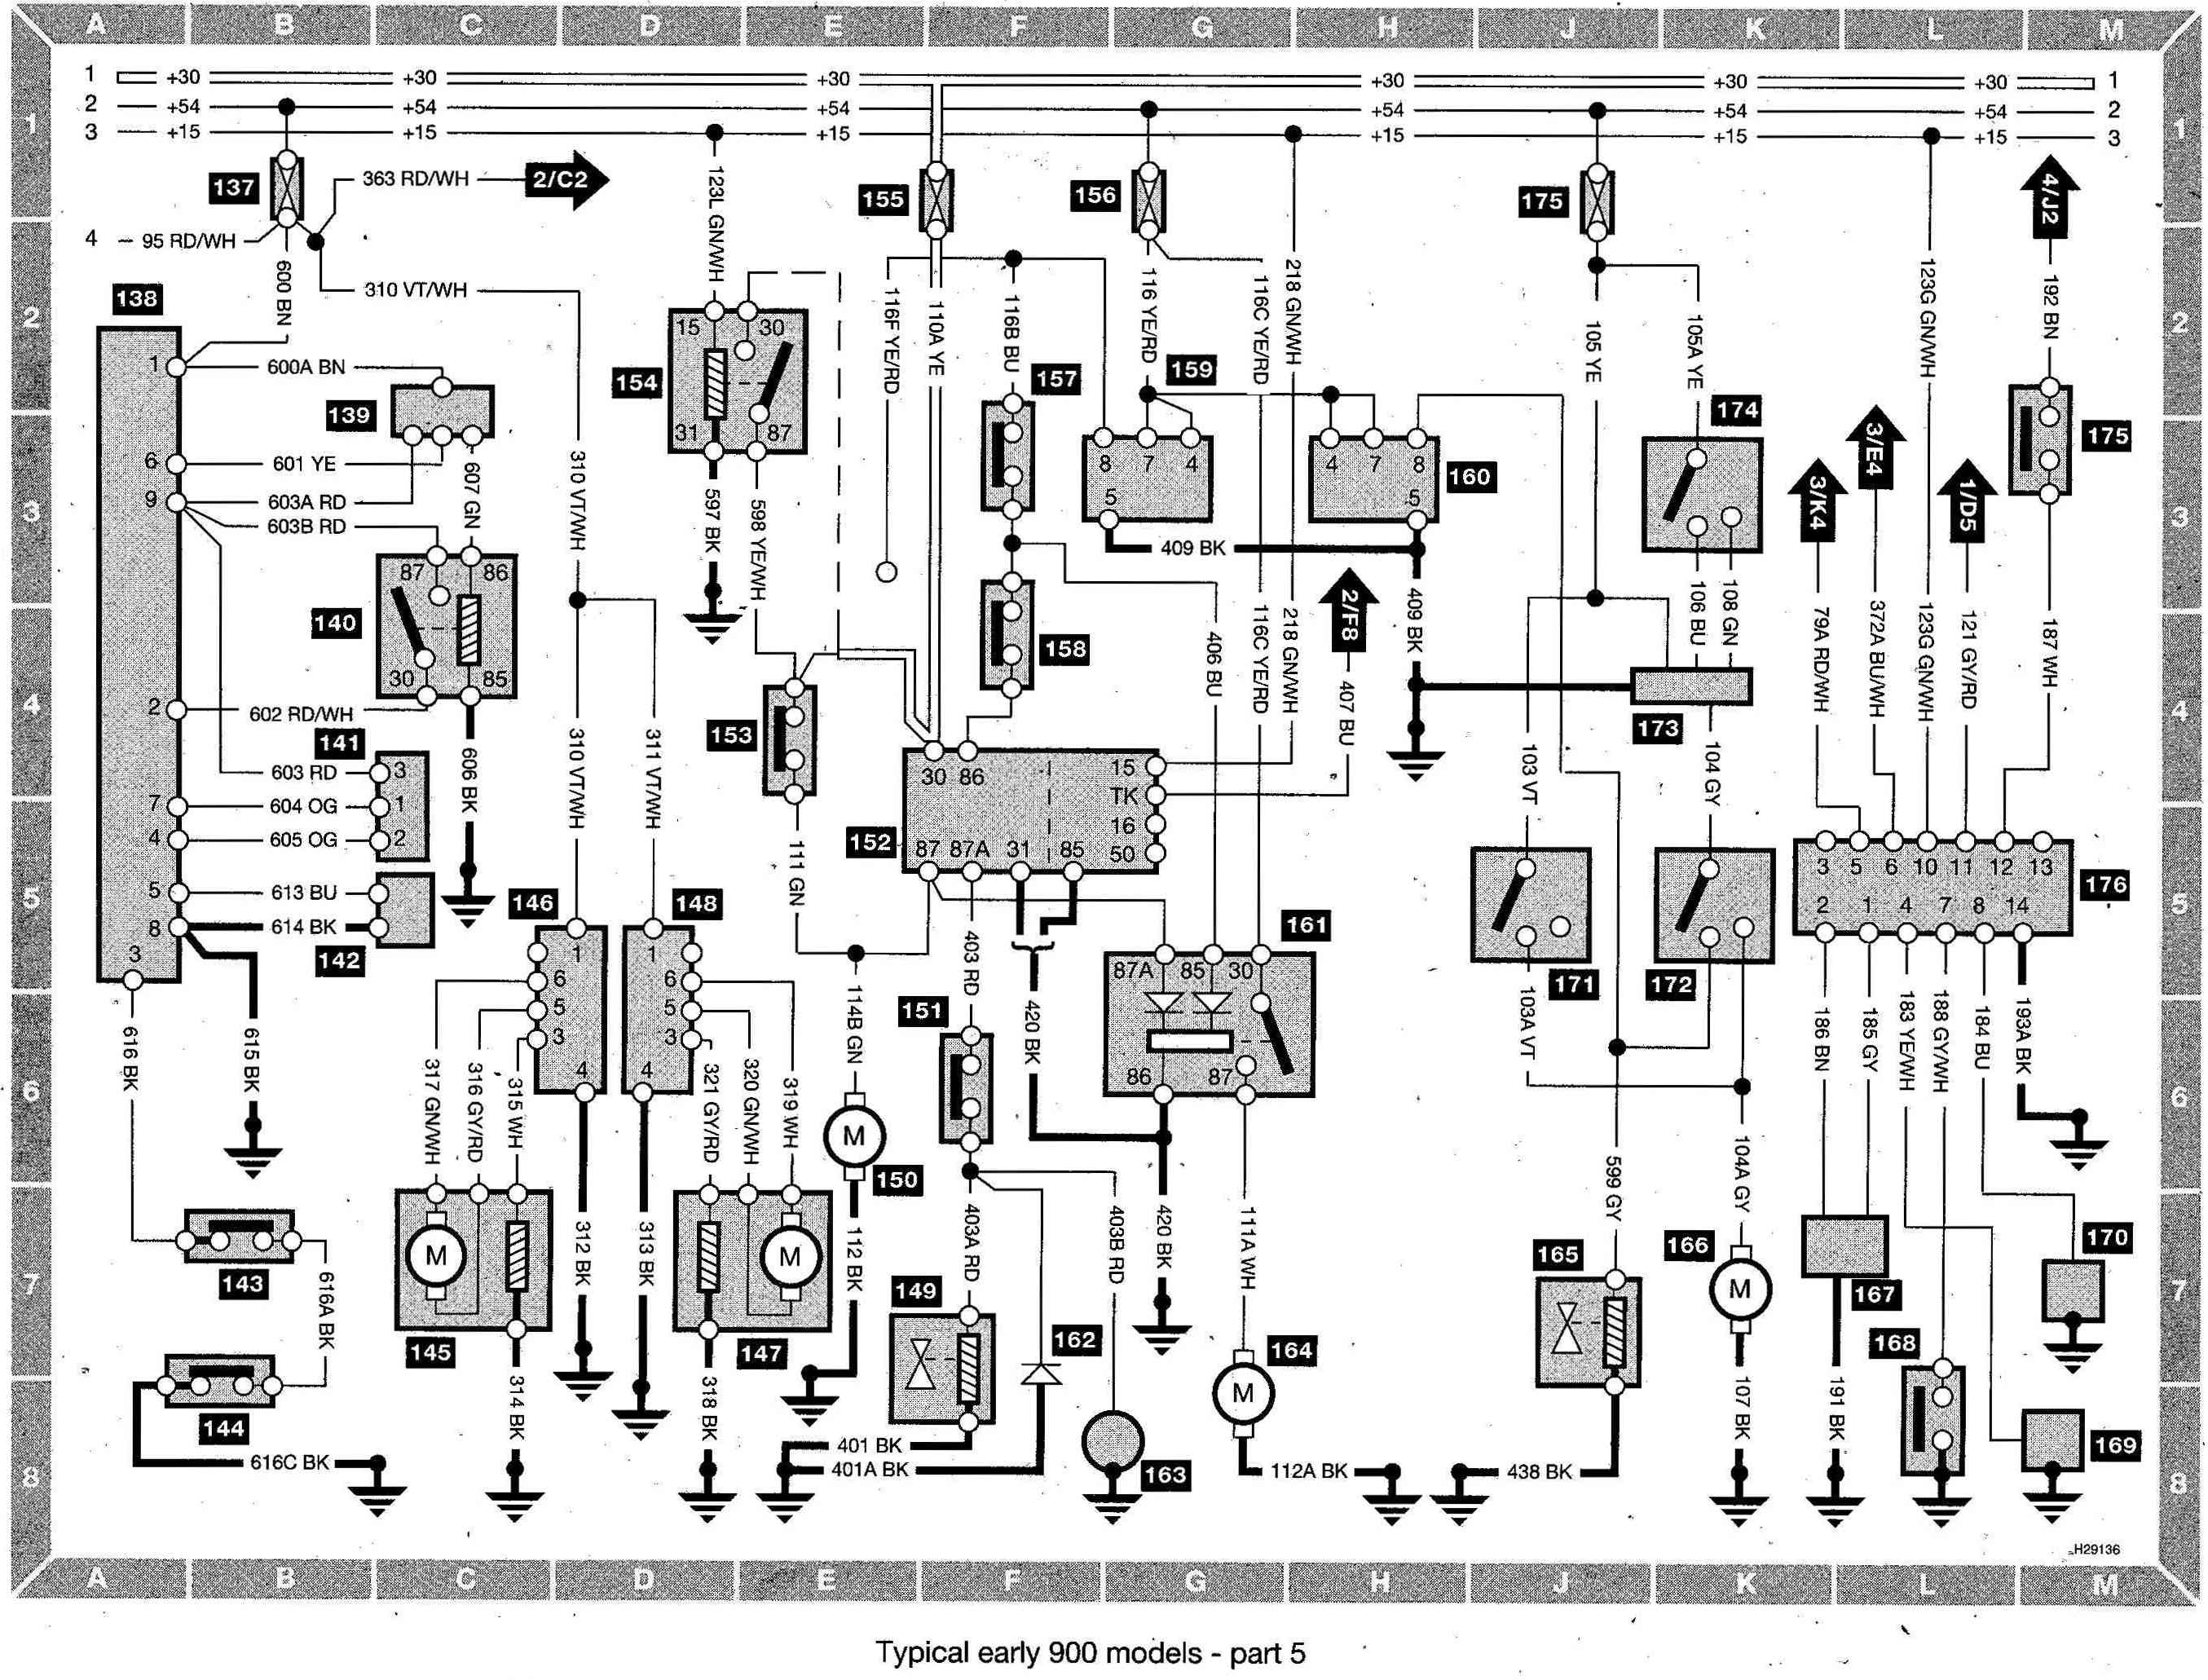 Well Saab 9 3 Radio Wiring Diagram Saab 900 Radio